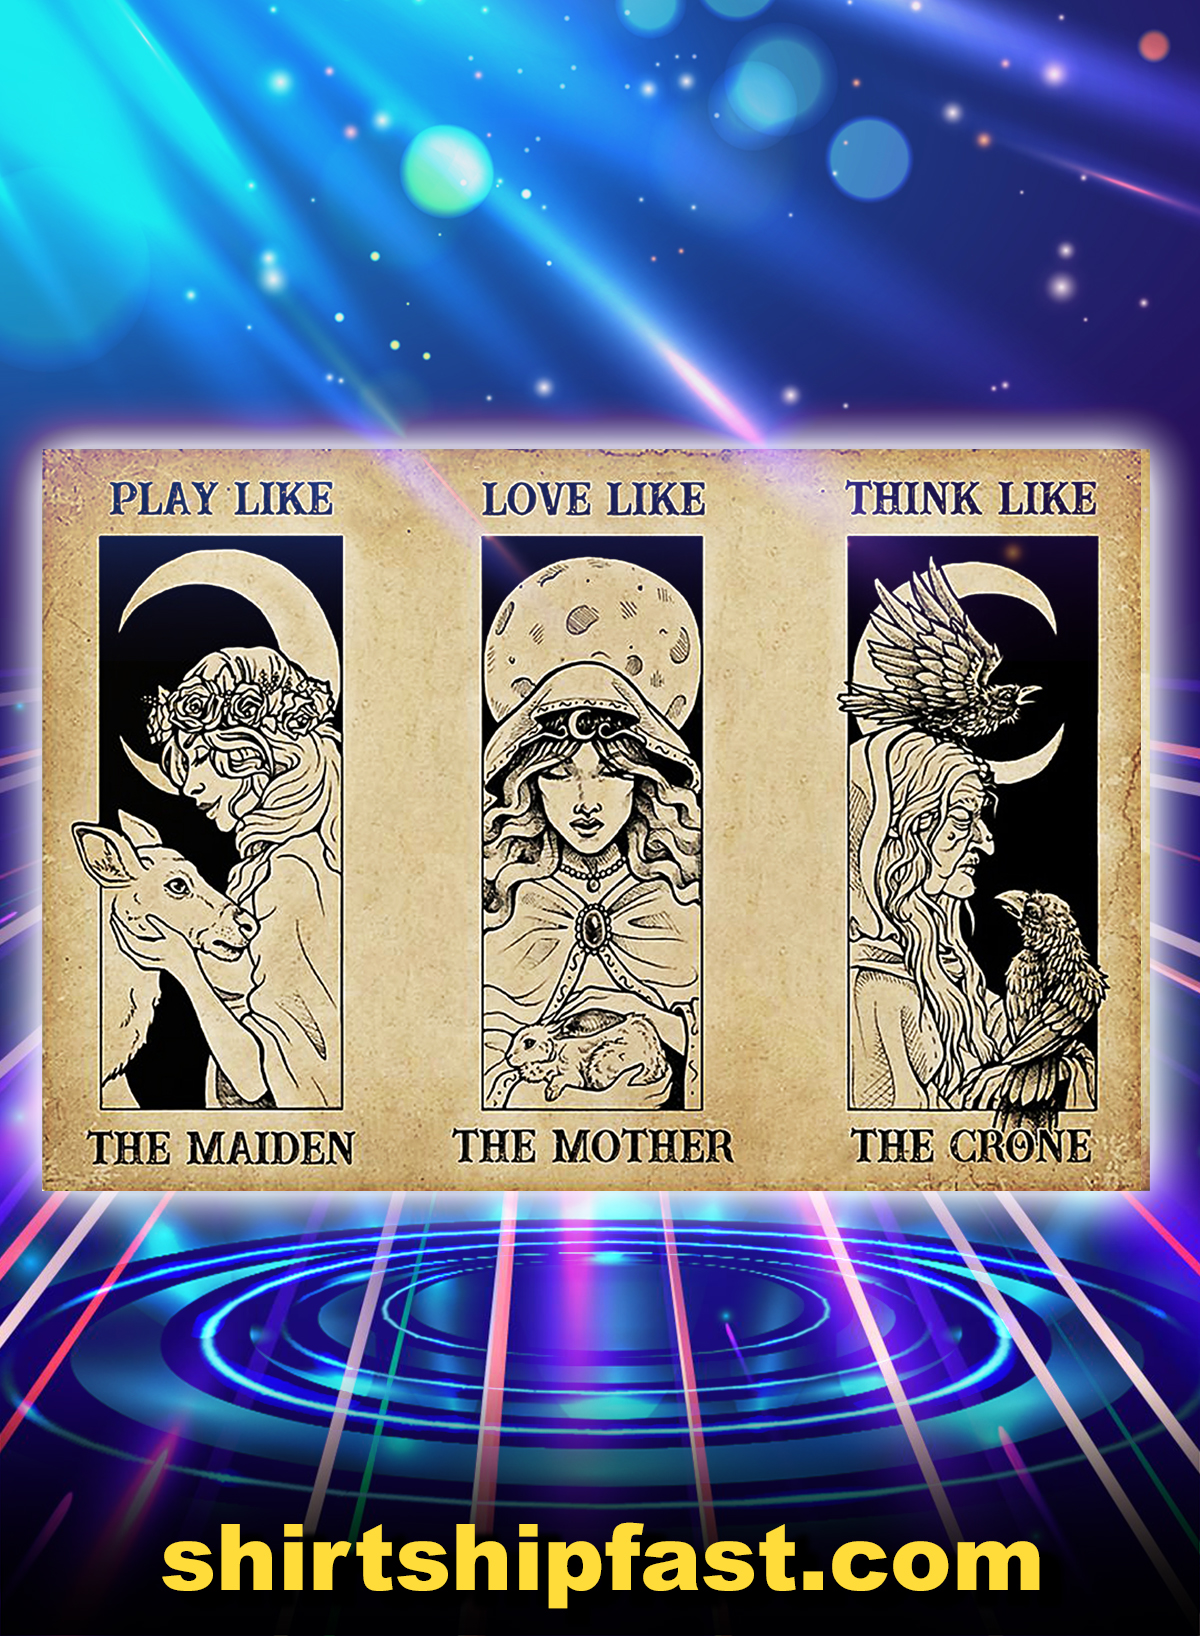 Witch play like the maiden love like the mother think like the crone poster - A4